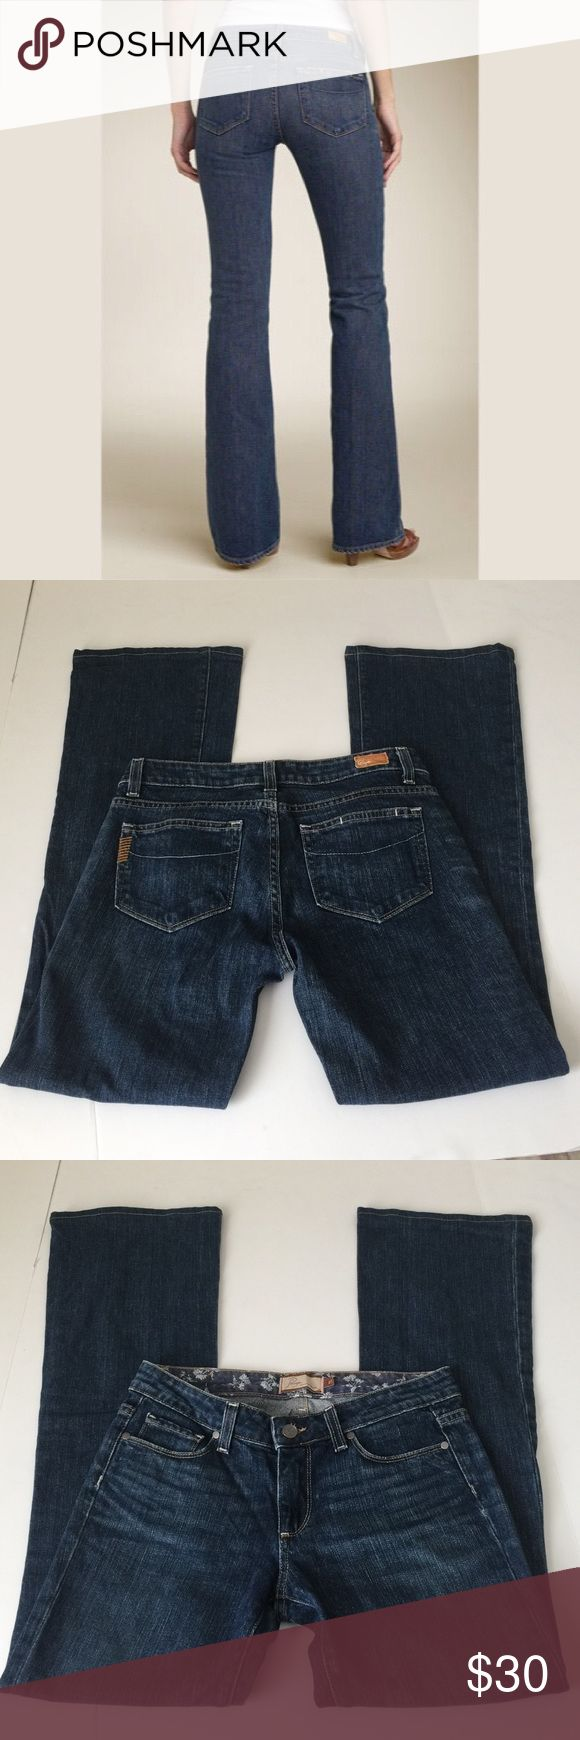 Paige Hollywood Hills Bootcut Jeans, size 27 Paige Hollywood Hills Bootcut Jeans in size 27. Flat lay measure of the waist is 14.75. Rise is 7.75, inseam is 31, and leg opening is 9.5. Made from 98% cotton and 2% spandex. Features factory fading and slight whiskering. In excellent condition, please ask if you have any questions. Paige Jeans Jeans Boot Cut